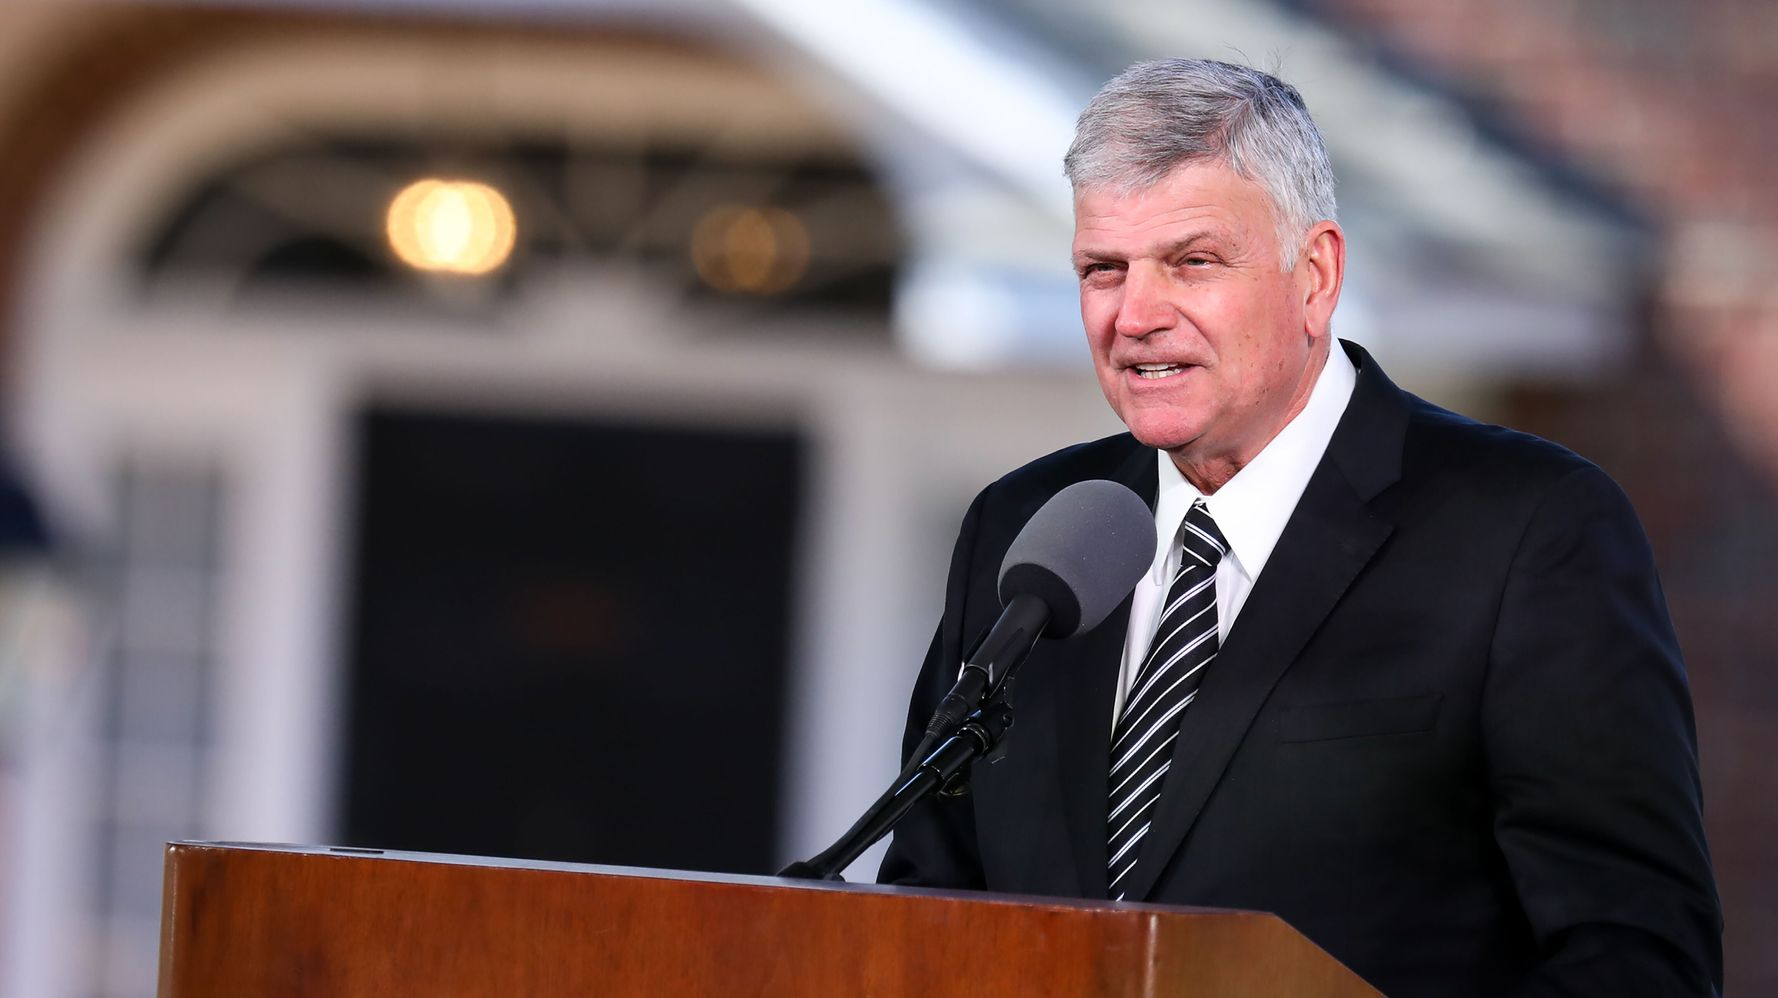 Franklin Graham Calls For 'Day Of Prayer' To Shield Trump From